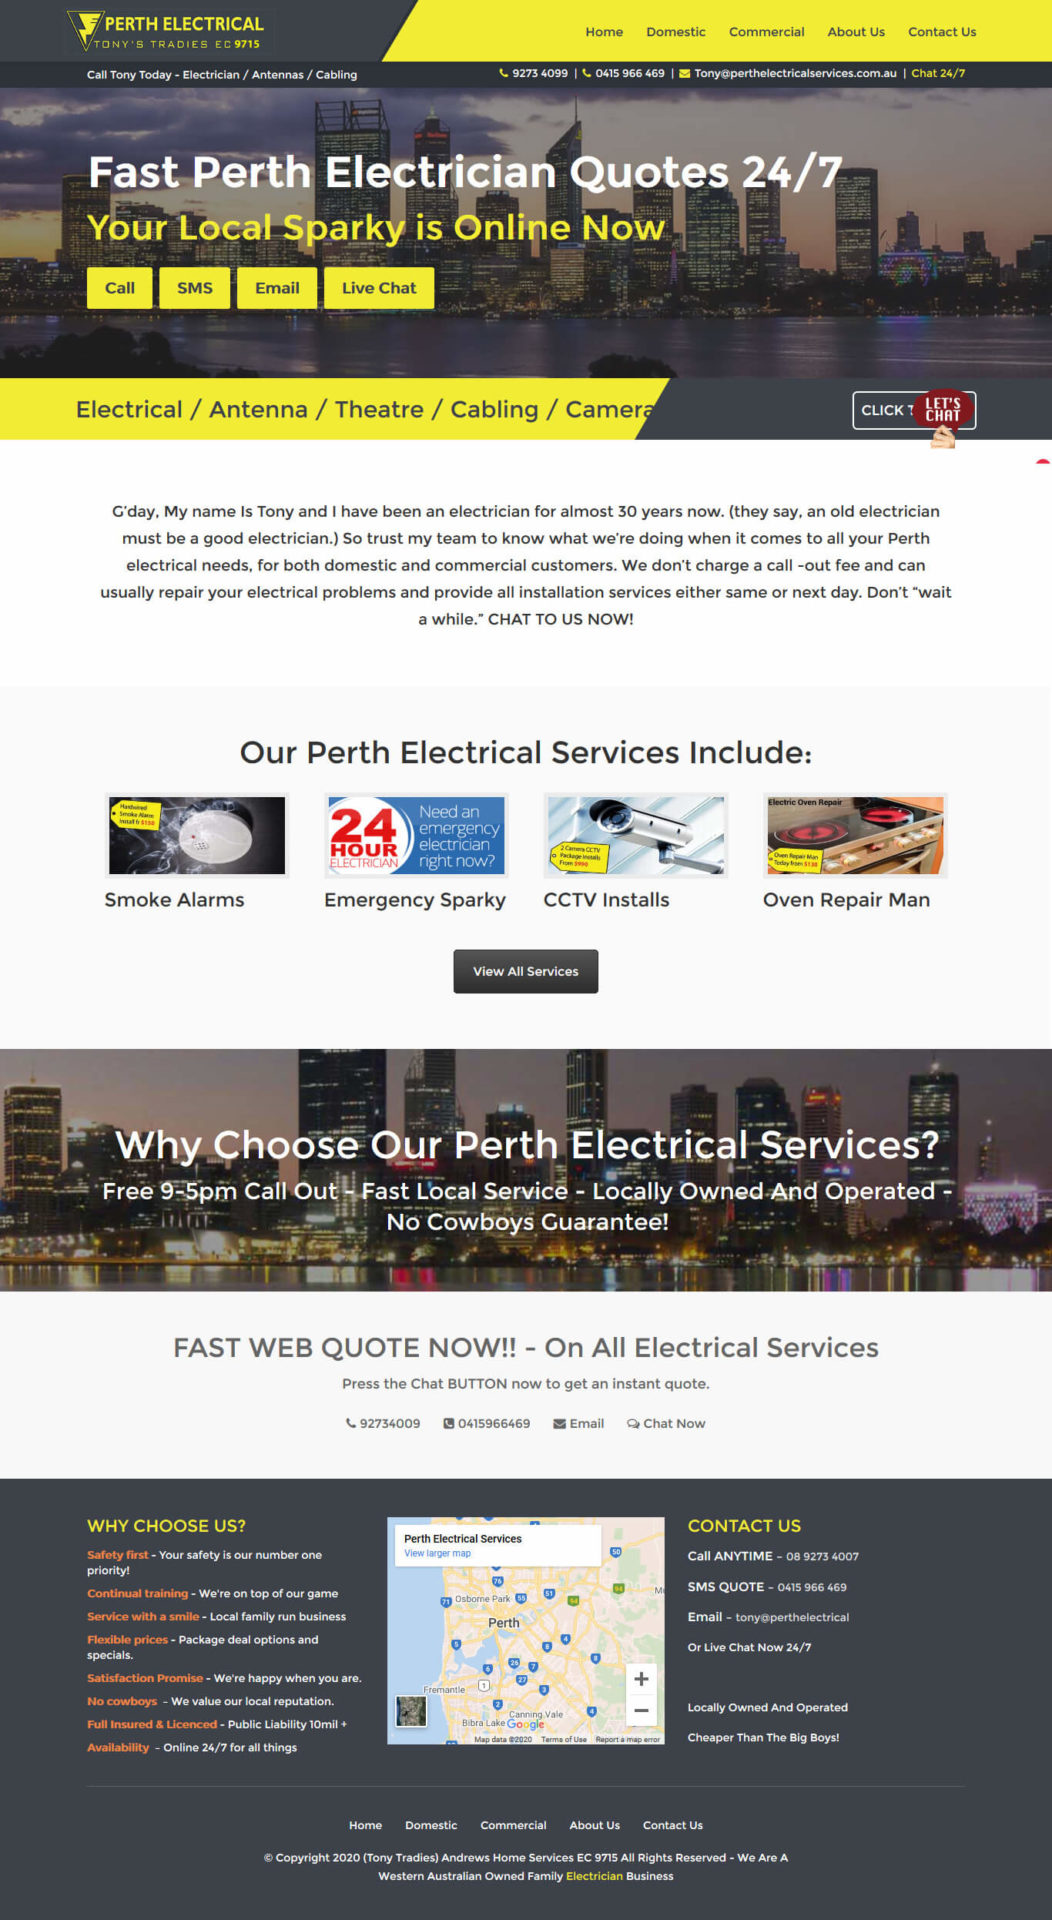 Perth Electrical Services - https://perthelectricalservices.com.au